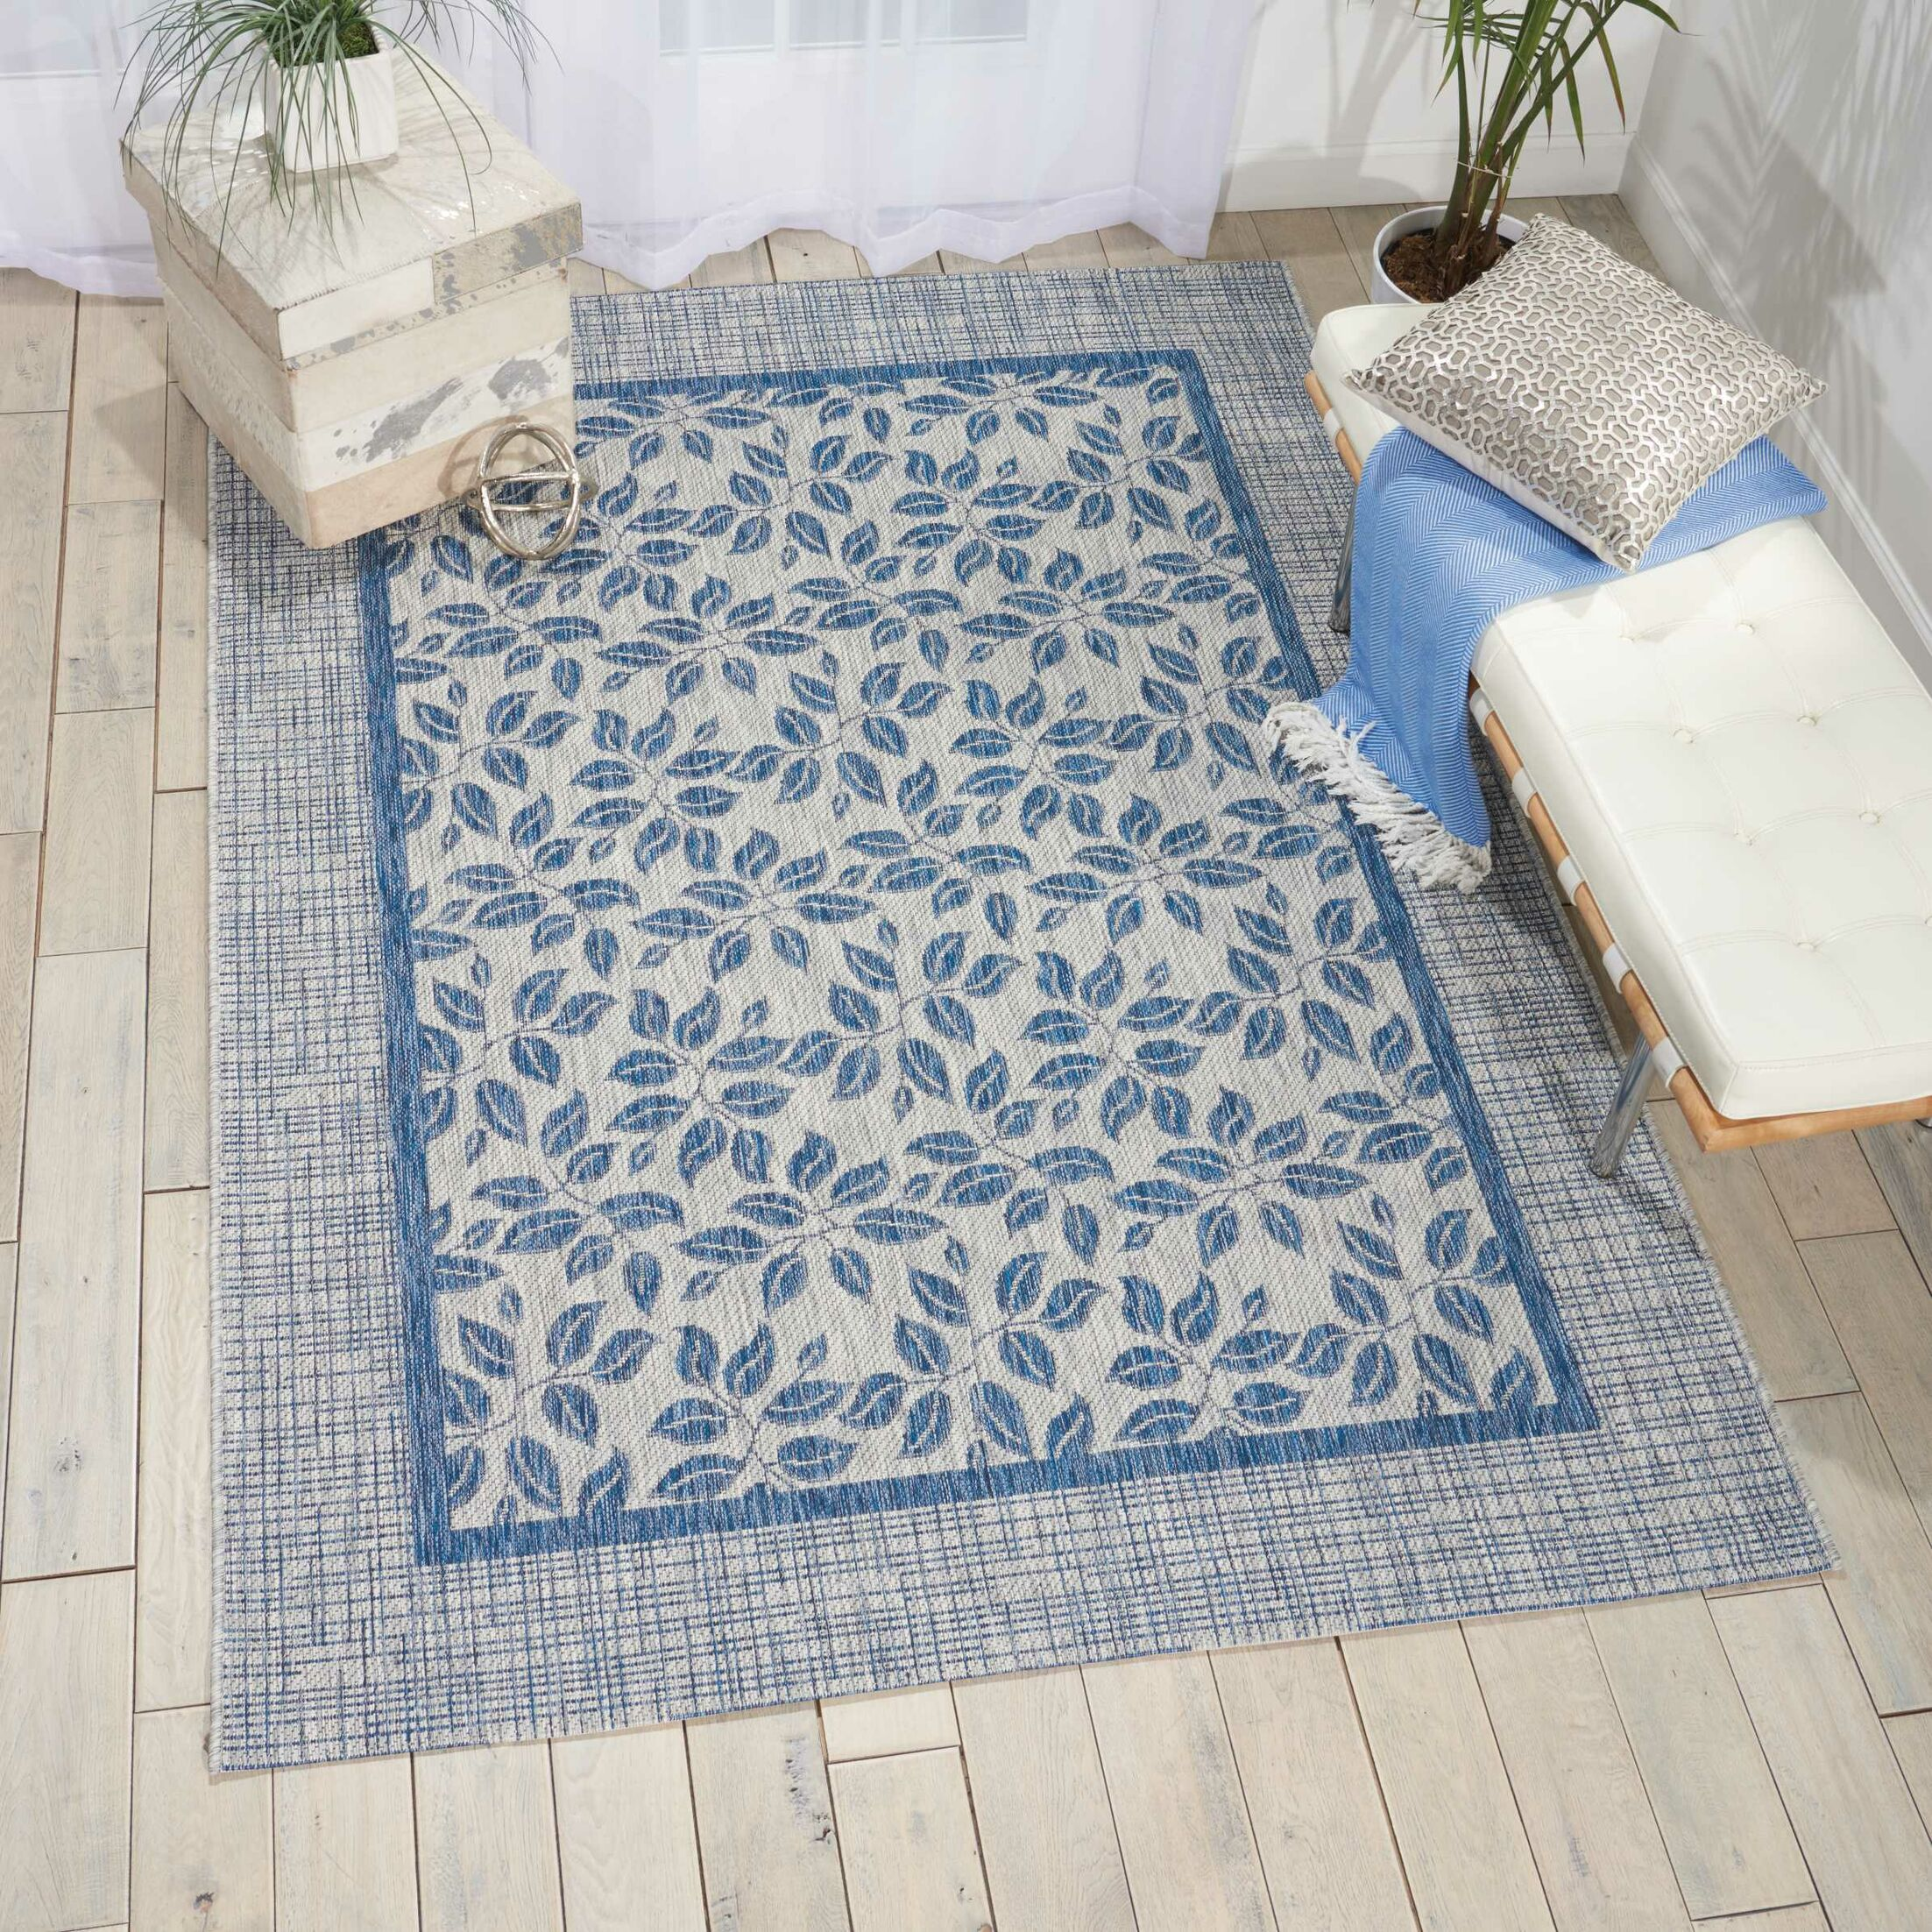 Key Haven Ivory/Blue Indoor/Outdoor Area Rug Rug Size: Rectangle 7'10